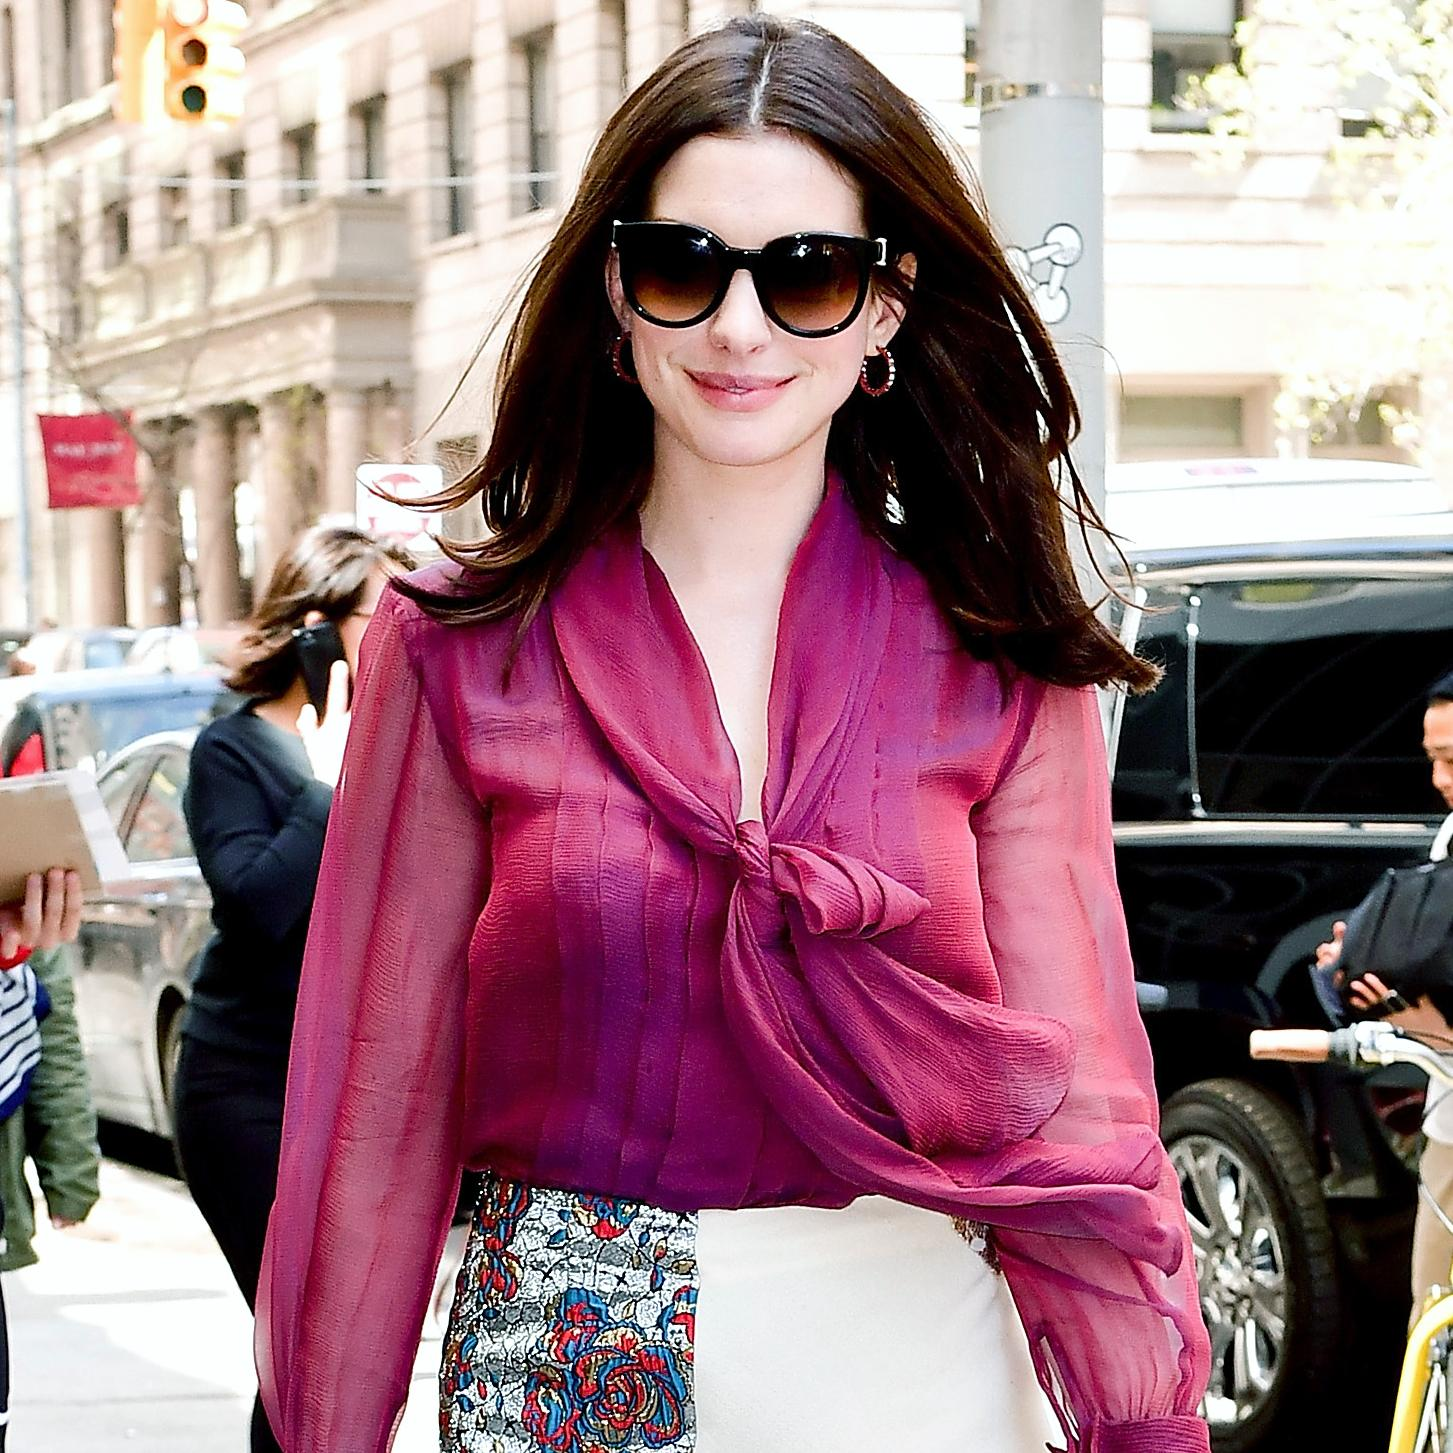 Anne Hathaway Transforms Into A Blonde Bombshell At The